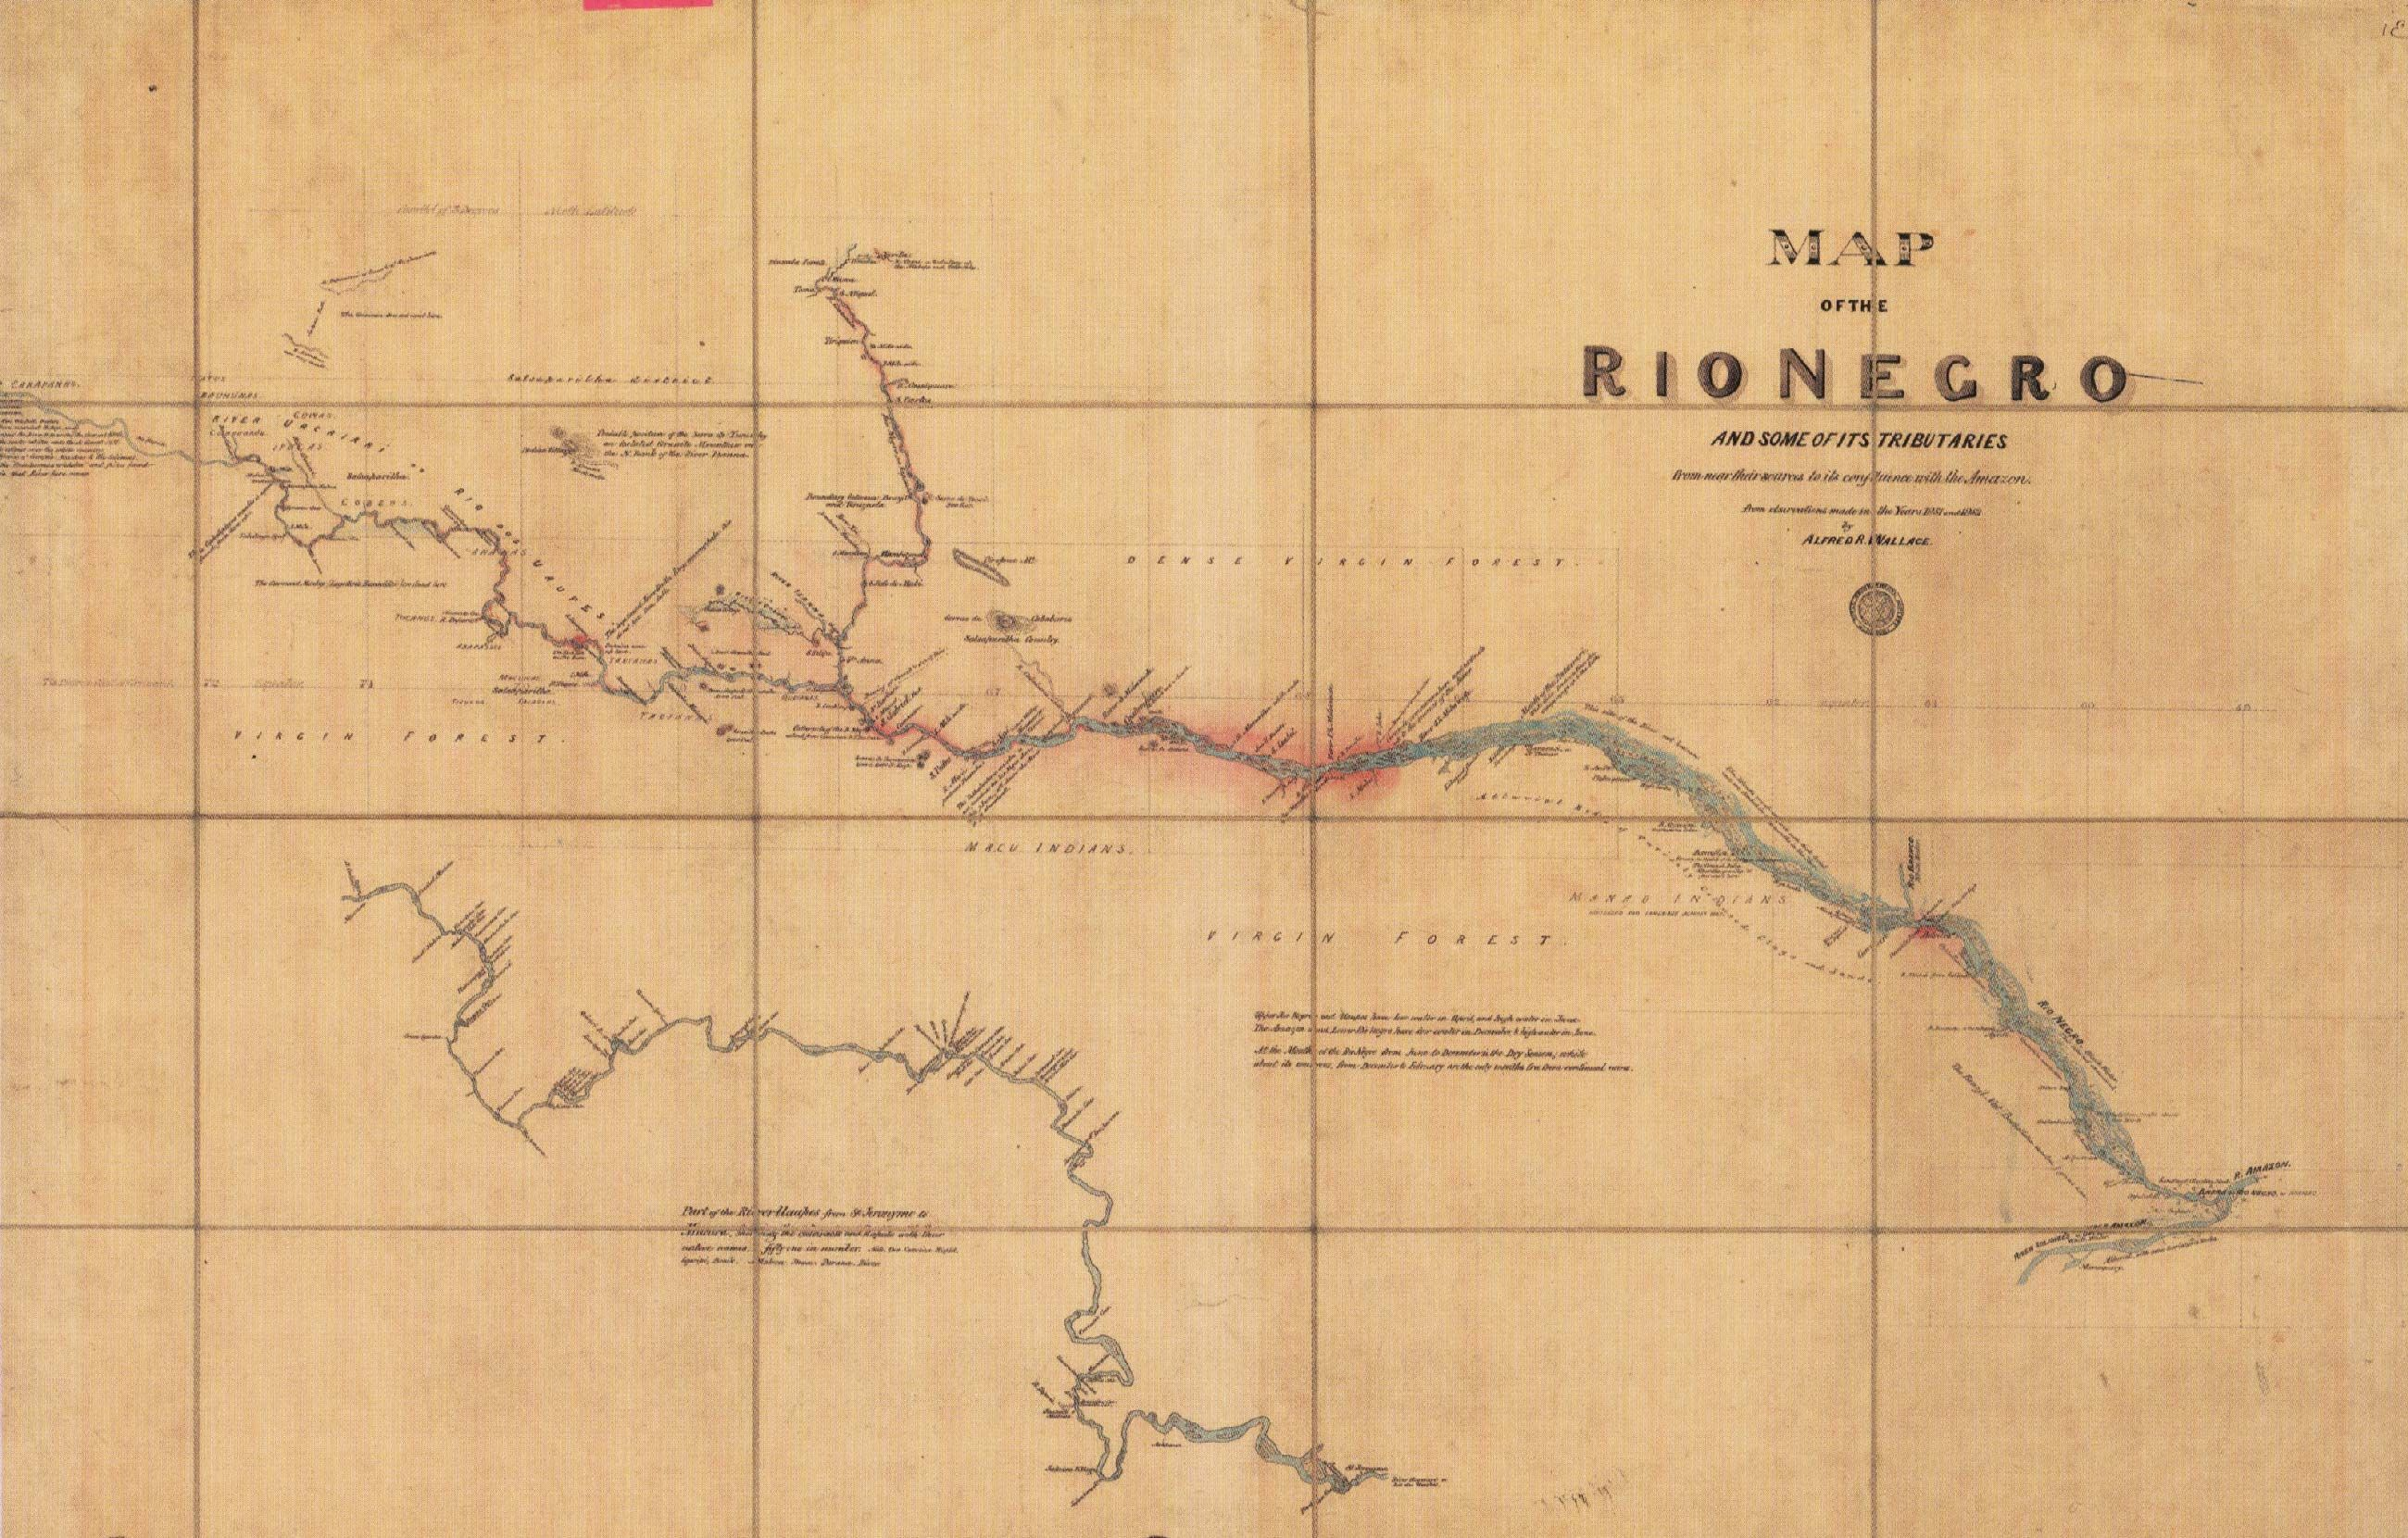 Fonte: A.R. Wallace, «Map of the Rio Negro and some of its tributaries», Journal of the Royal Geographical Society, London 1853.